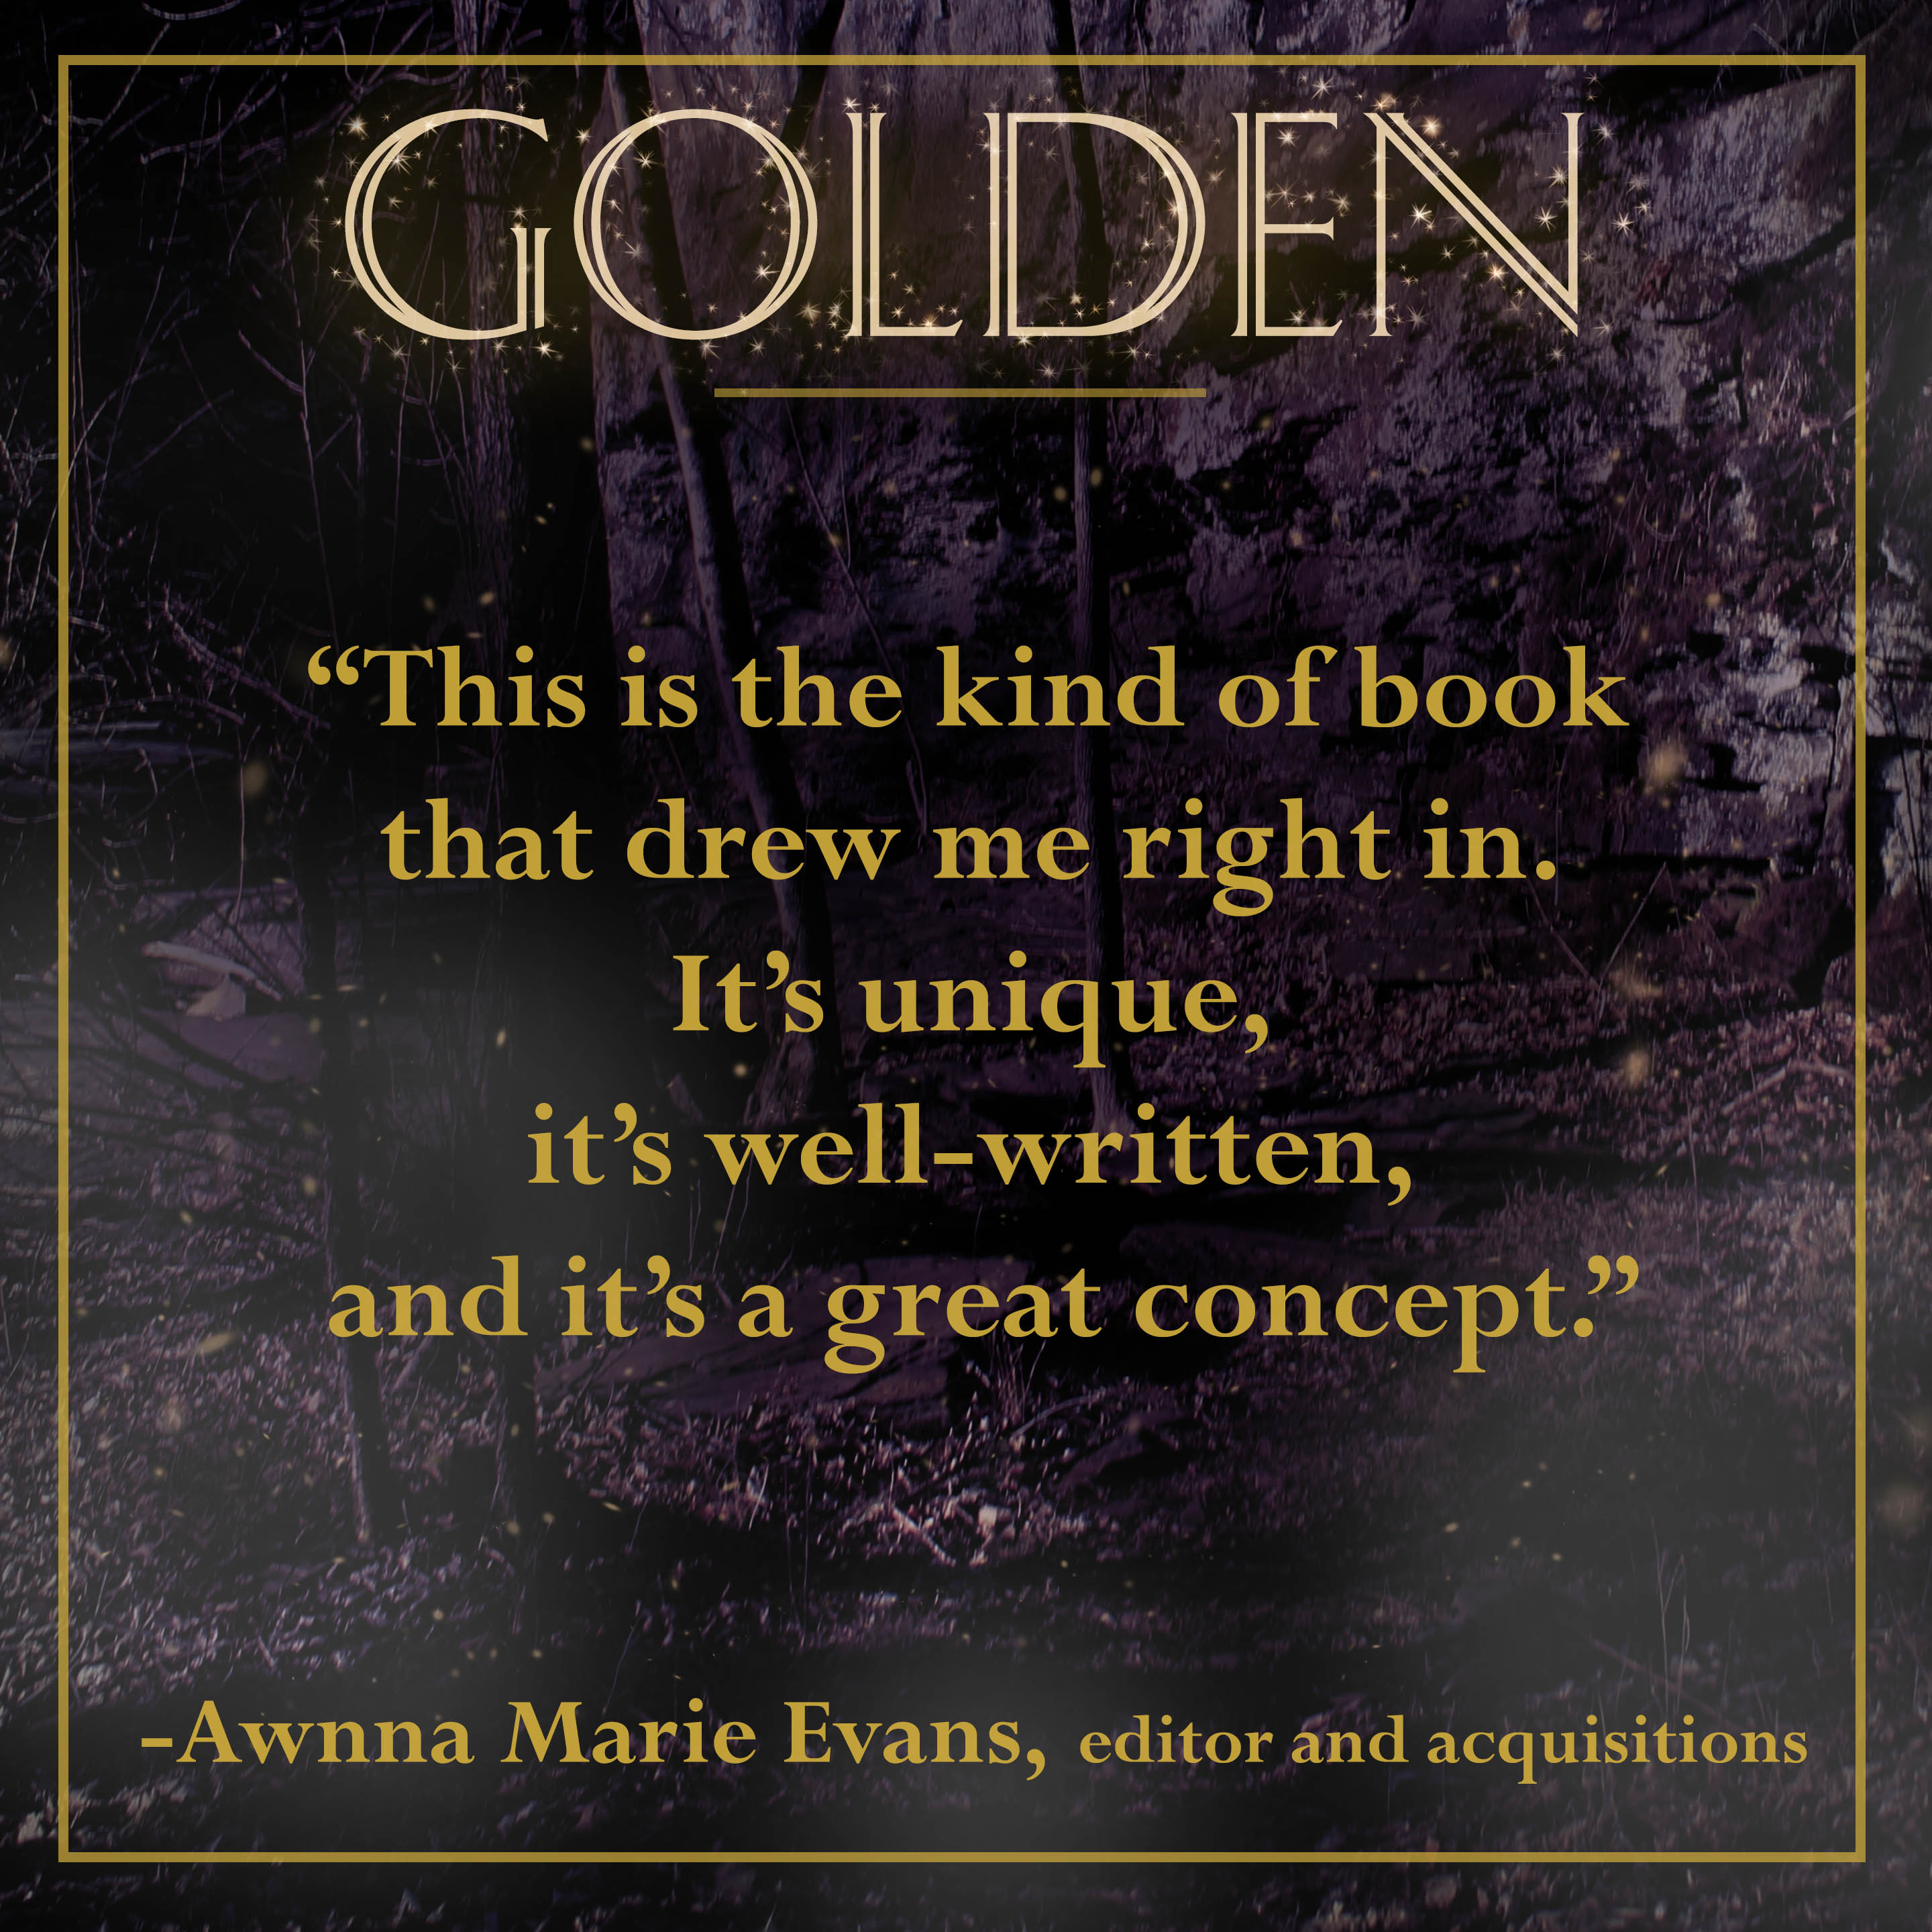 golden fan quote-awnna2